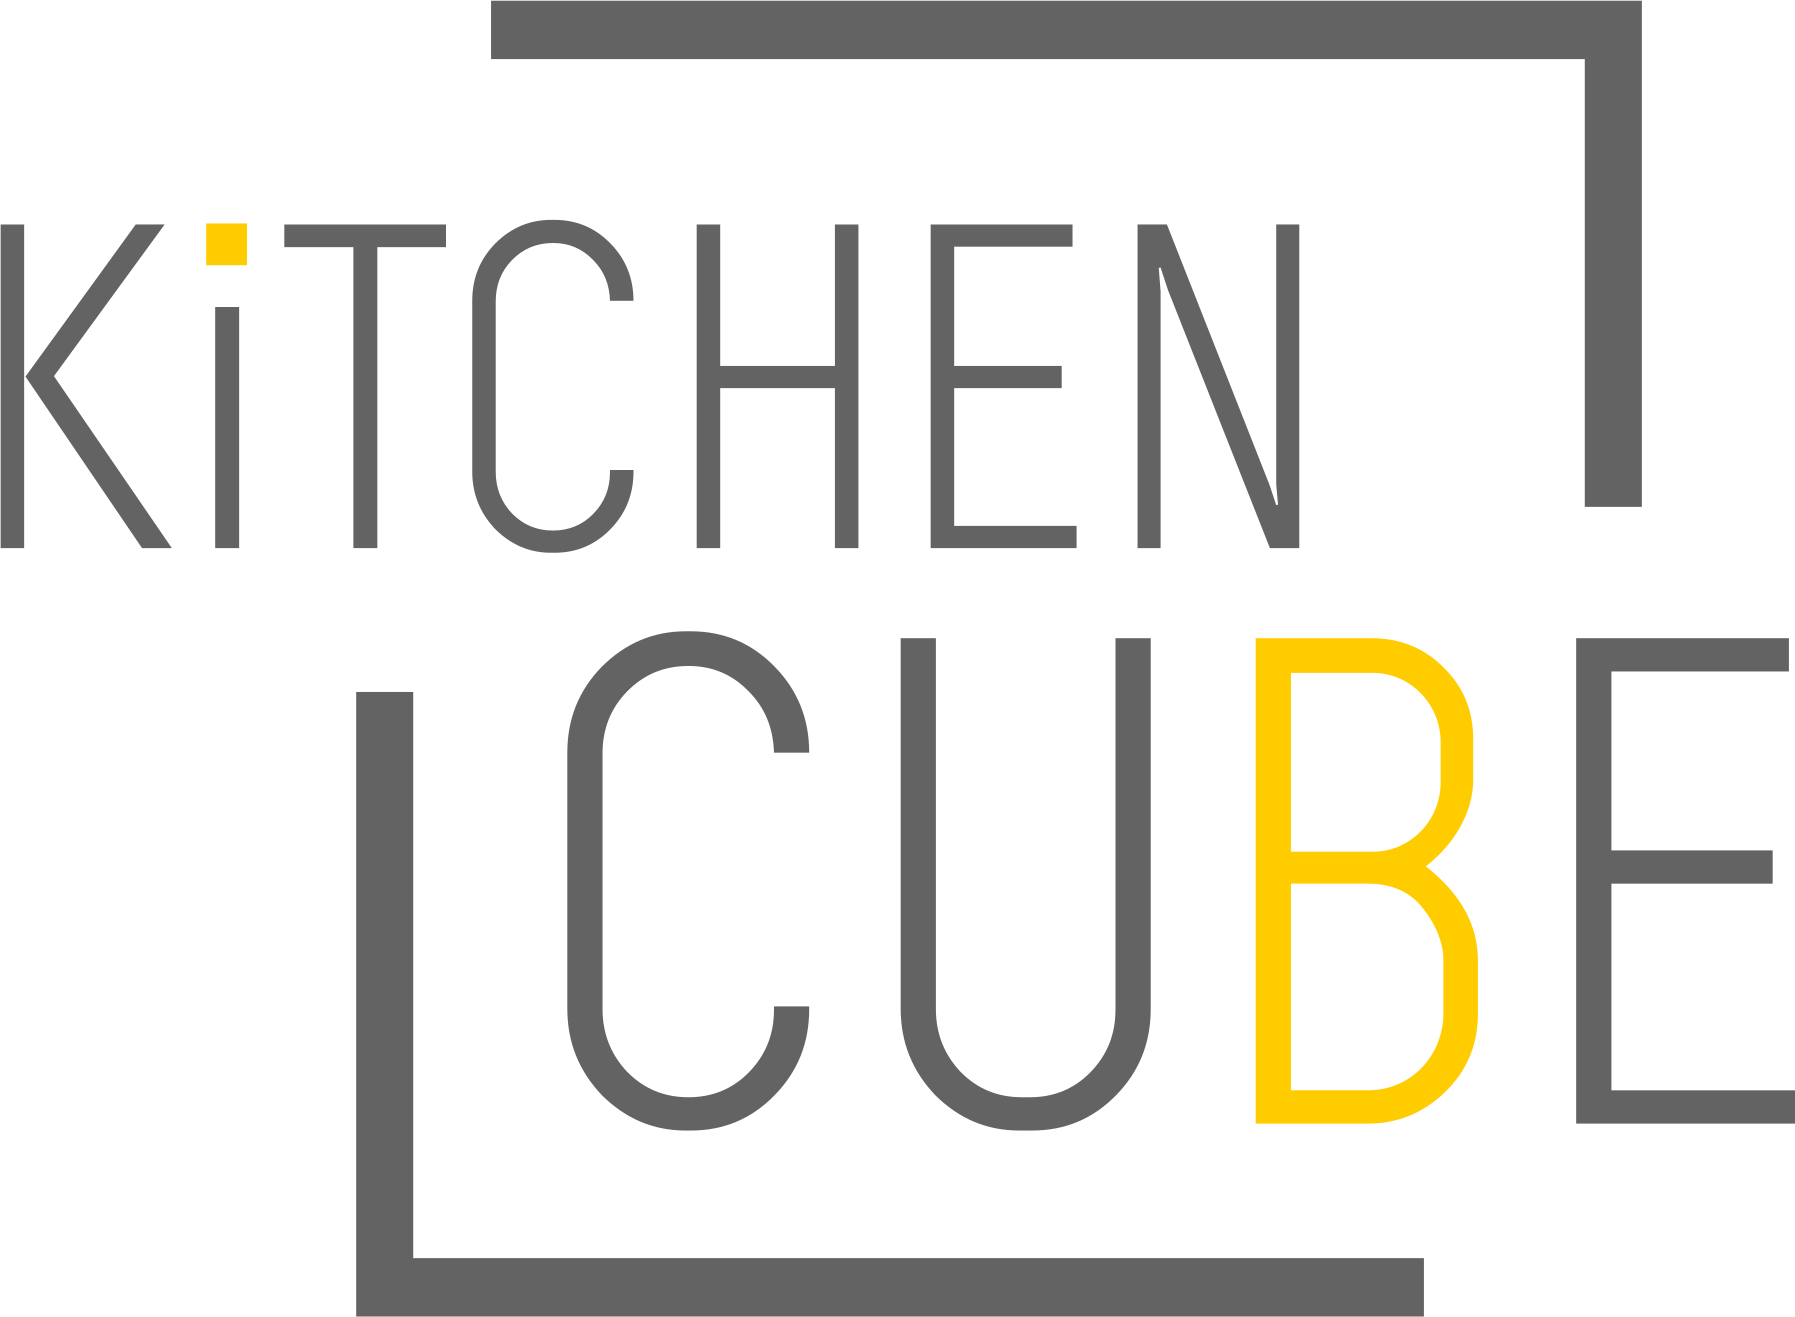 Kitchen Cube Shop